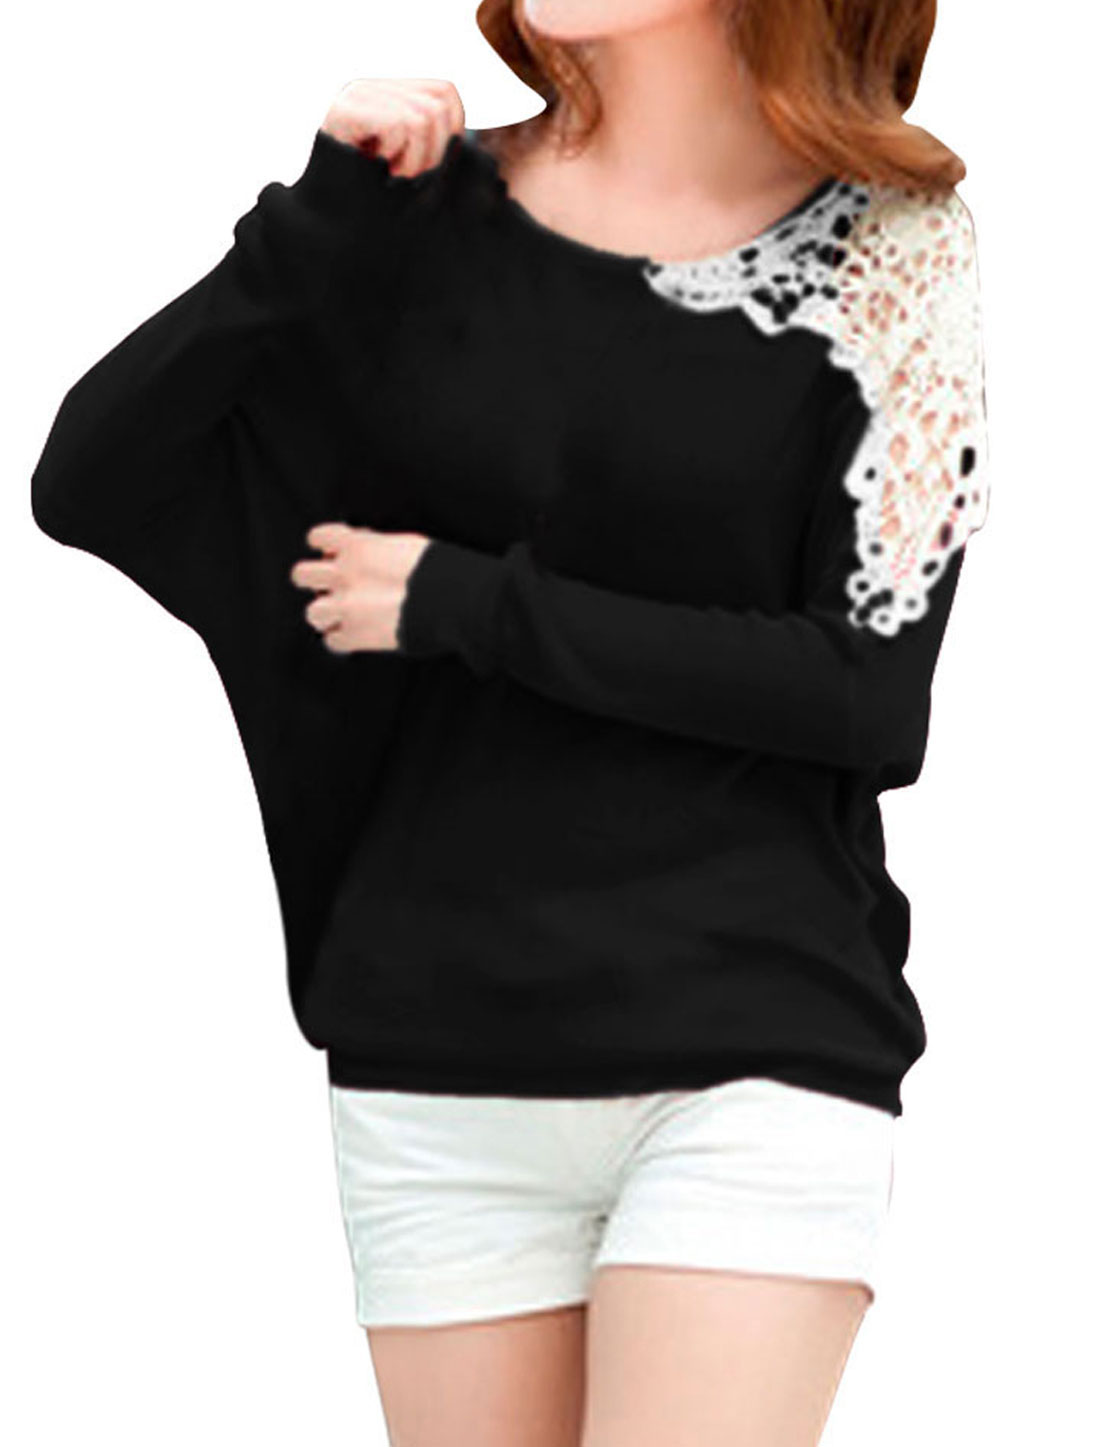 Ladies Black Batwing Sleeves Pullover Casual Autumn Knitting Shirt XS